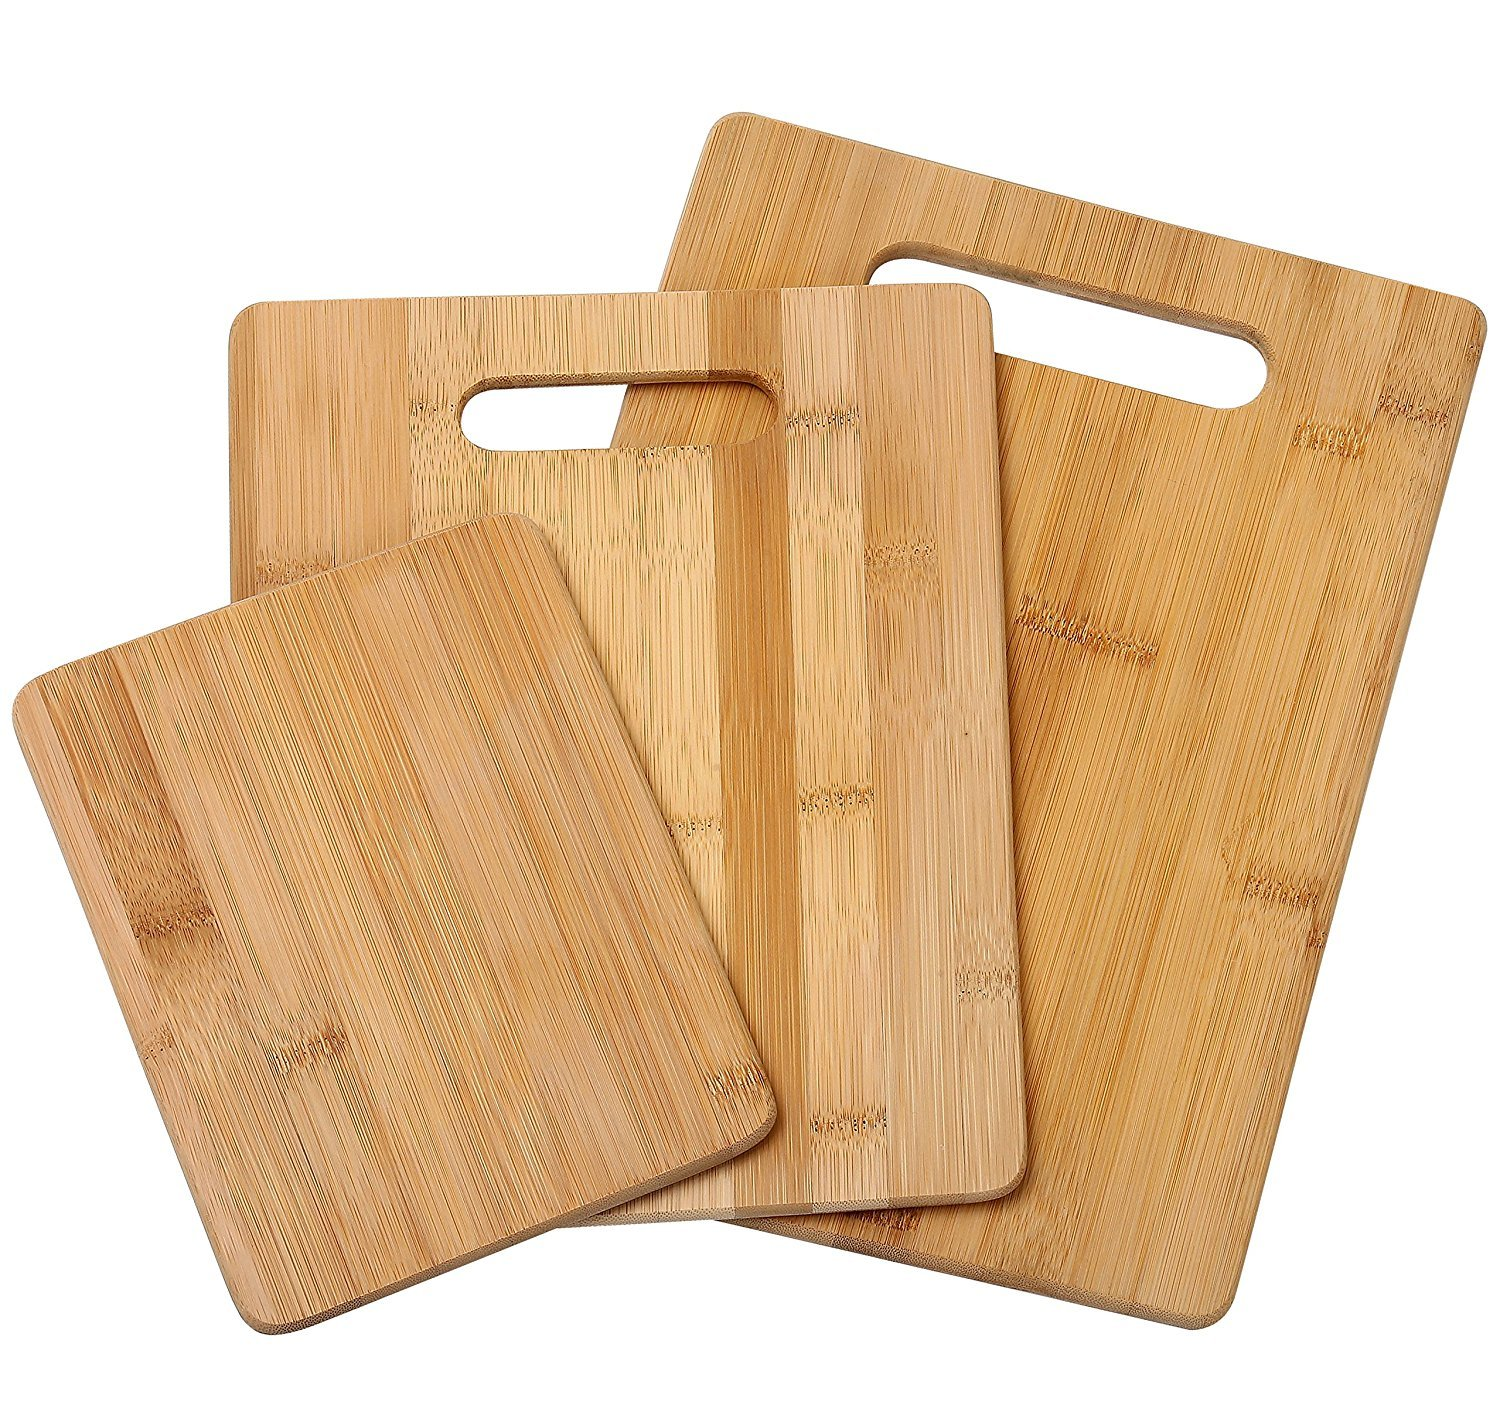 Bamboo Cutting Board with Handles for Food Prep, Meat, and Vegetables set of 3